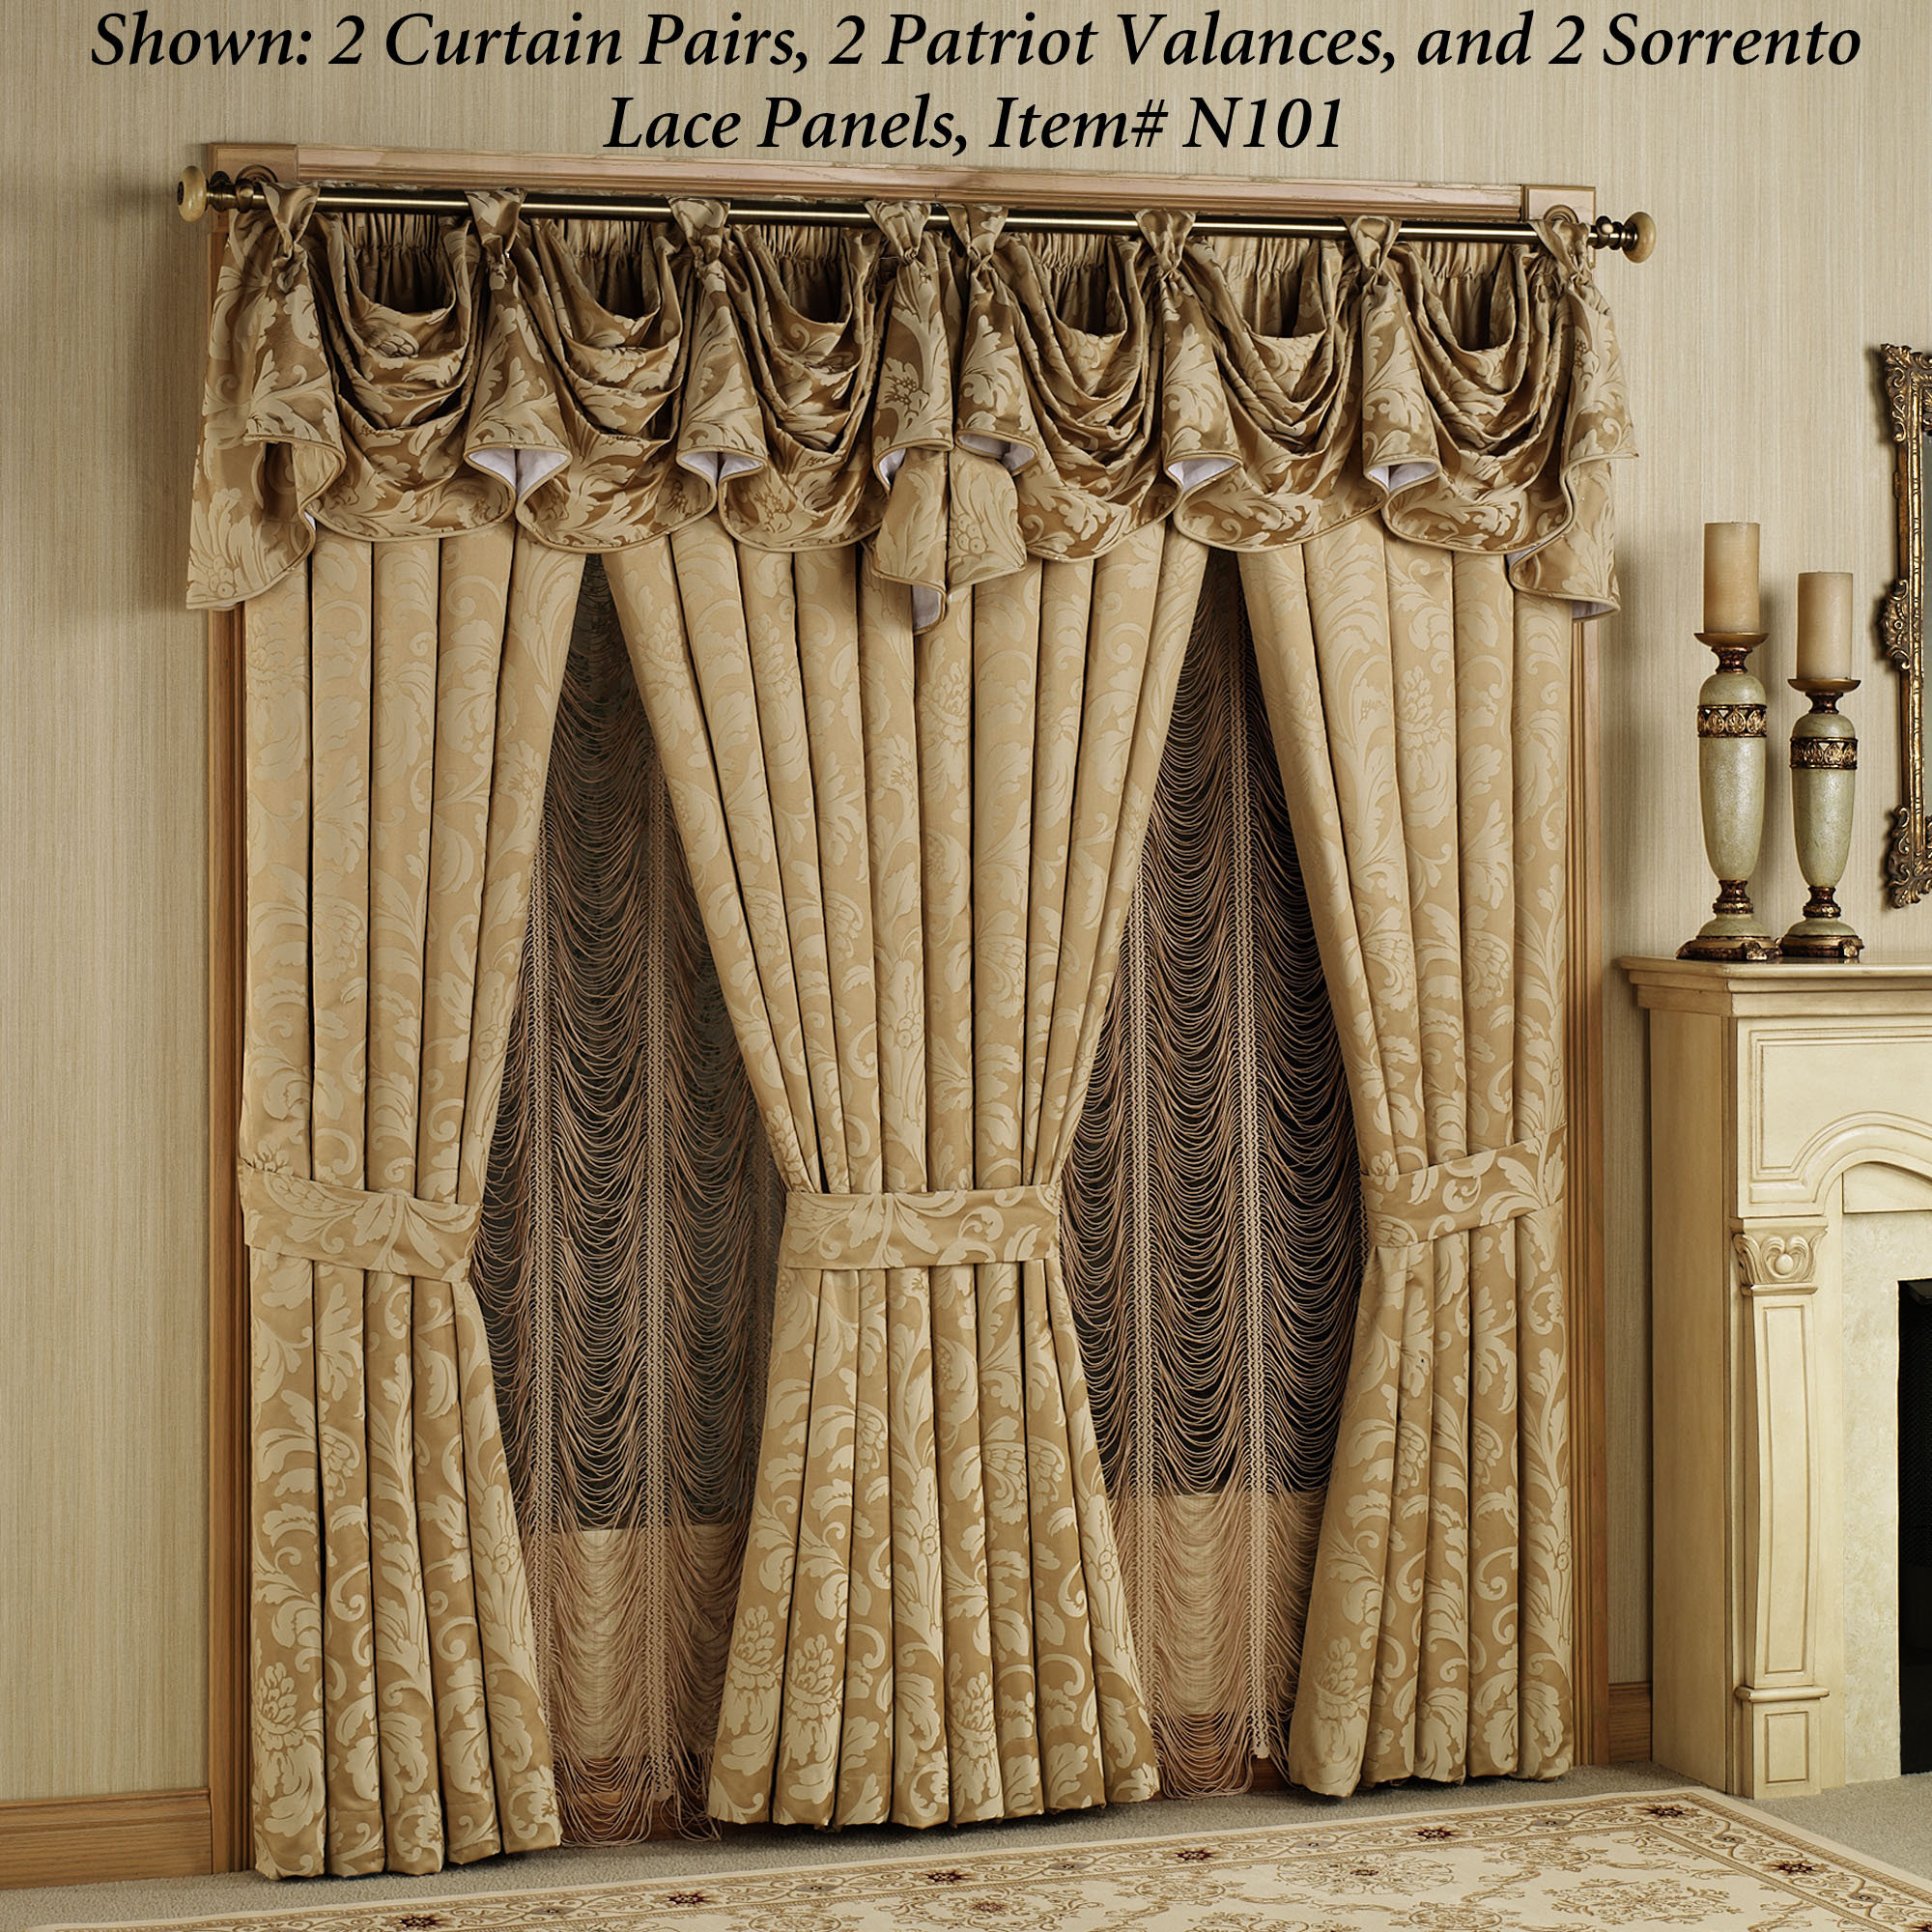 Impressive Types Of Curtains For Windows Best Design You Living Room Bedroom Blinds Ideas Modern Drapes Beautiful Curtain Designs Great Window Treatments Styles Gordyn